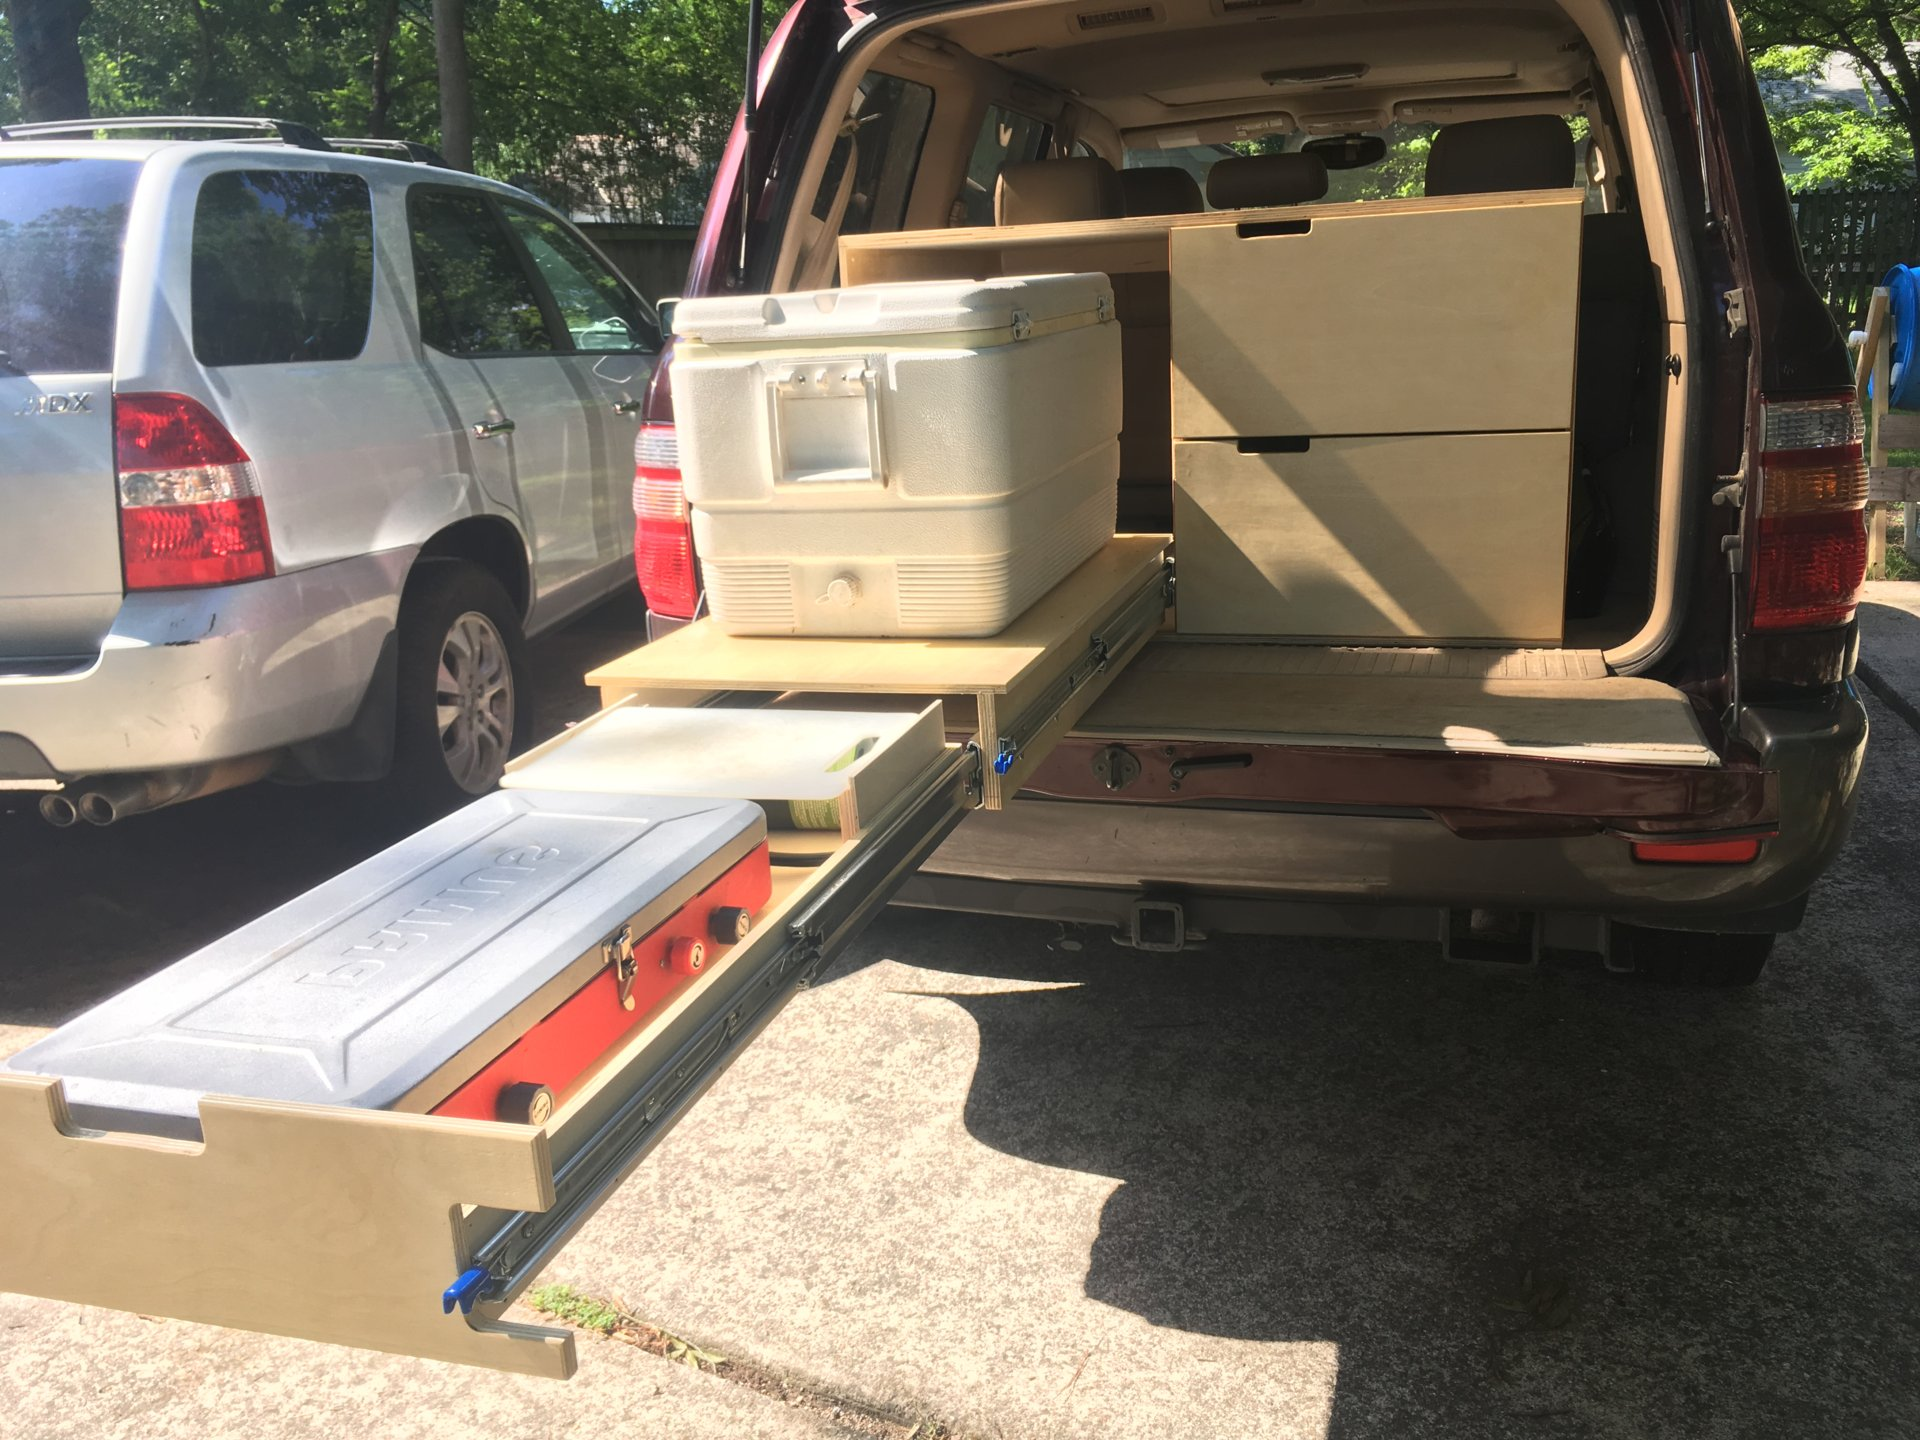 Anyone Unhappy With Camping Drawers In Their Vehicle Drawers Vs Cargo Boxes Page 2 Ih8mud Forum